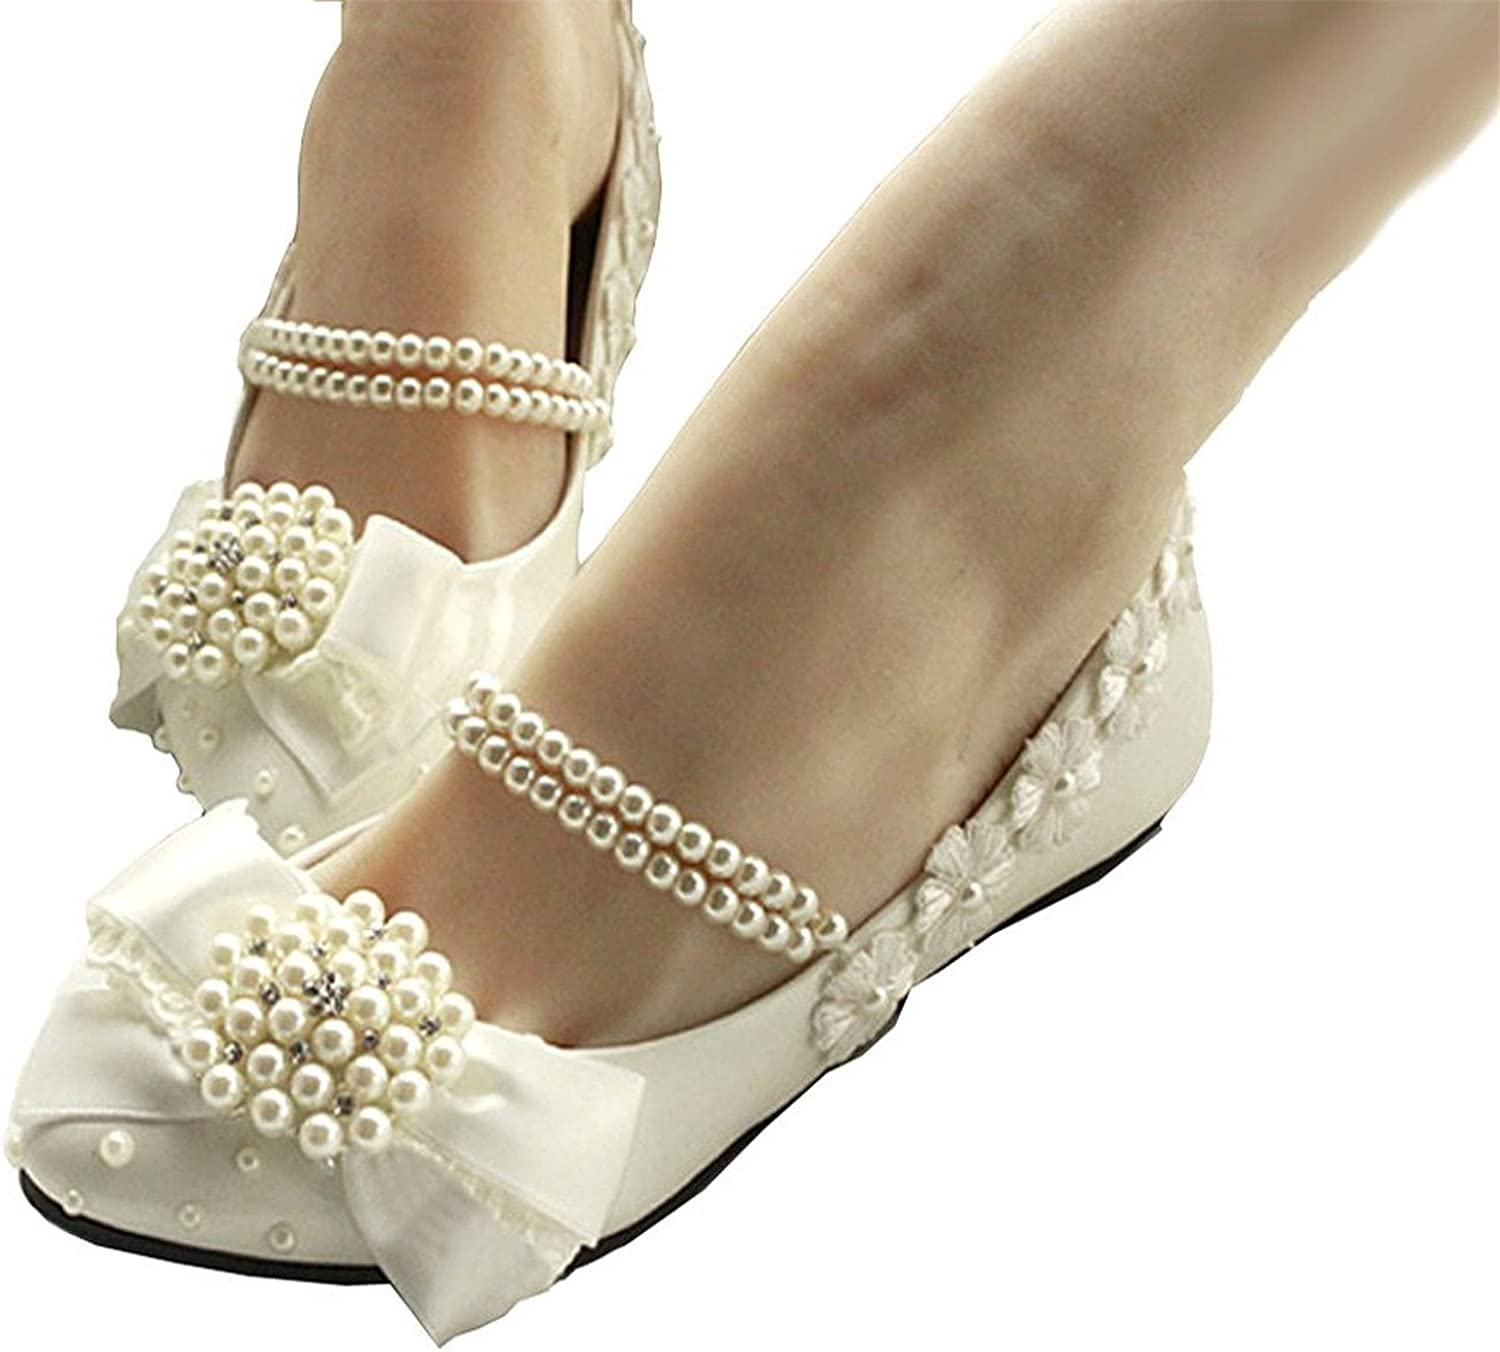 Pilusooou Elegant Women's Mary Jane Flats Pearls Bows Across Tops Dress Wedding shoes